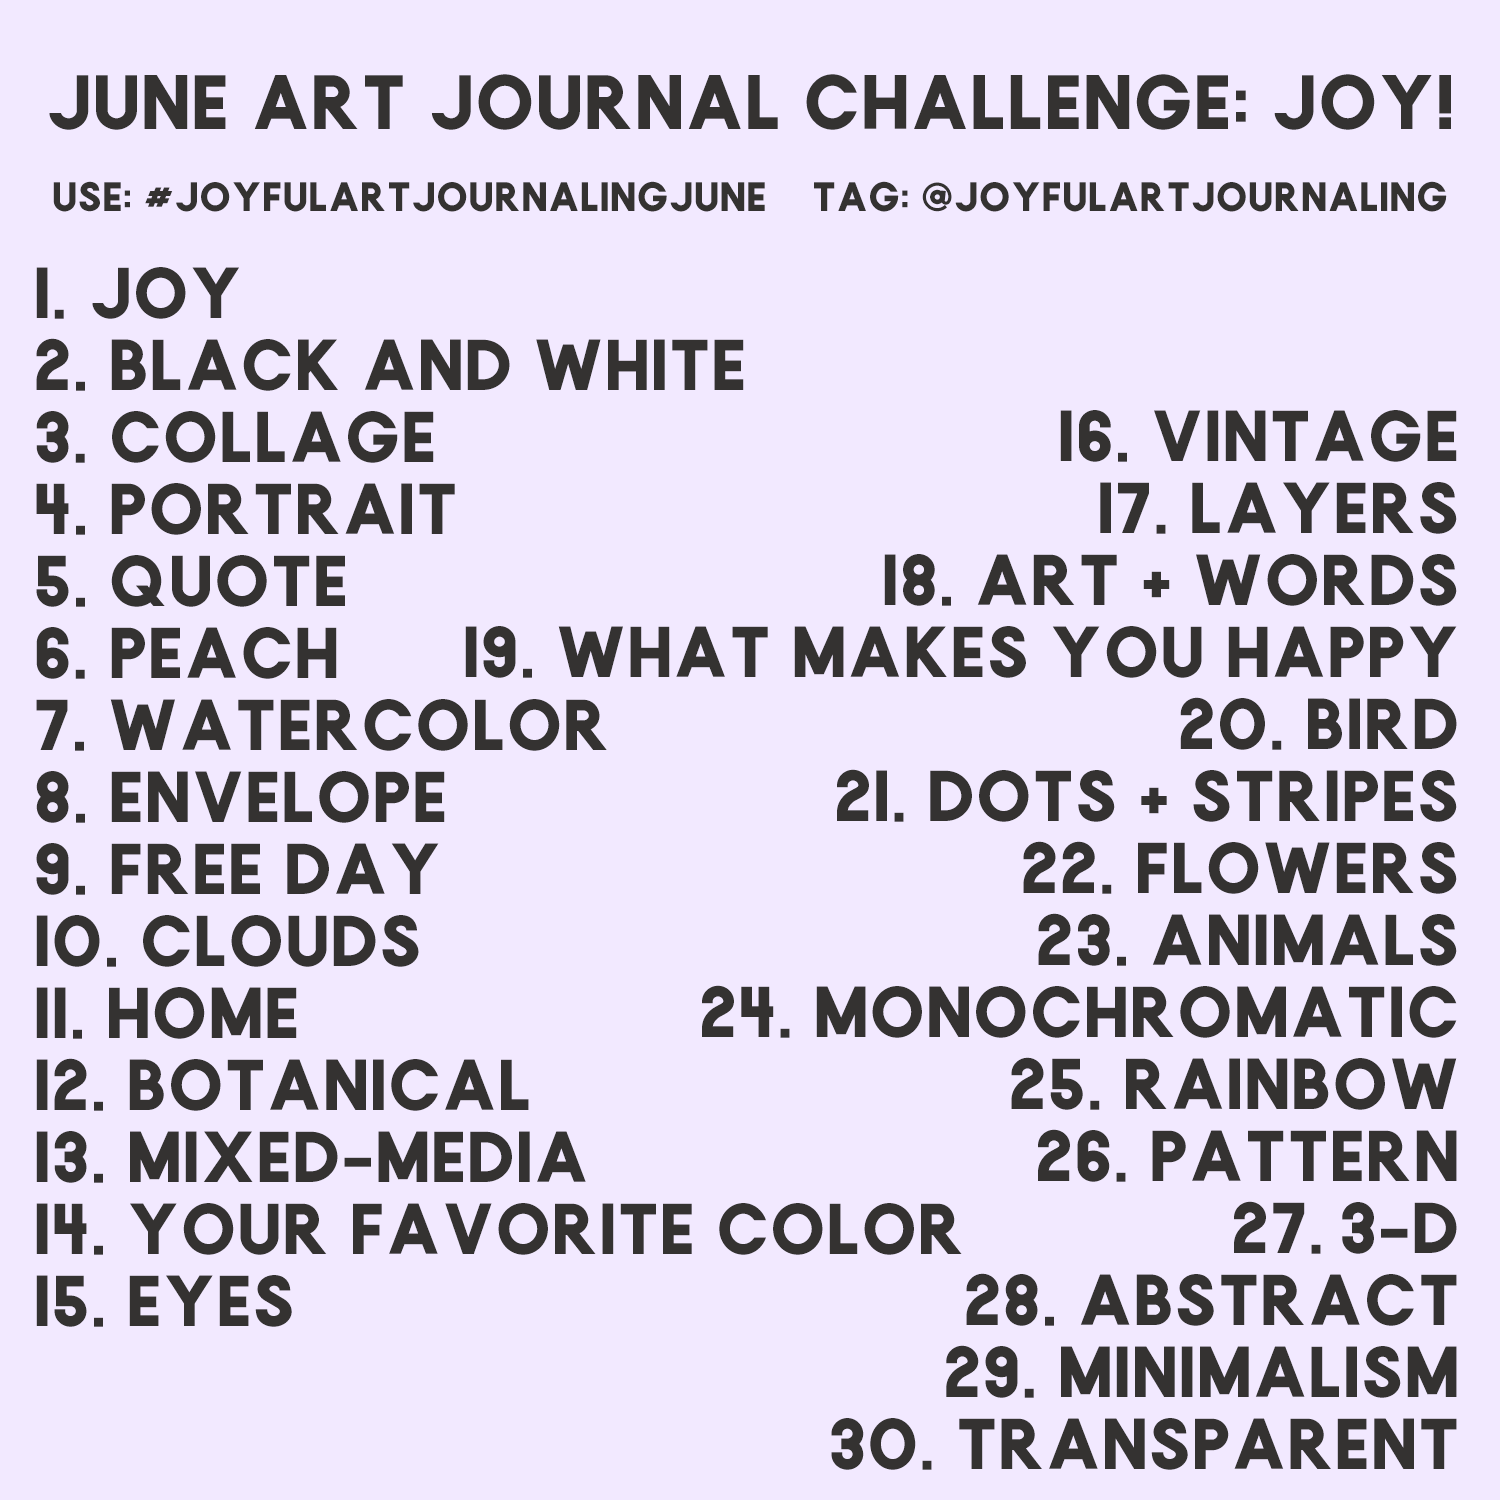 Join this 30 day art journal challenge to bring more JOY into your life, and the world, through art journaling! These 30 daily art journaling prompts are included. Click through to learn more. #joyfulartjournaling